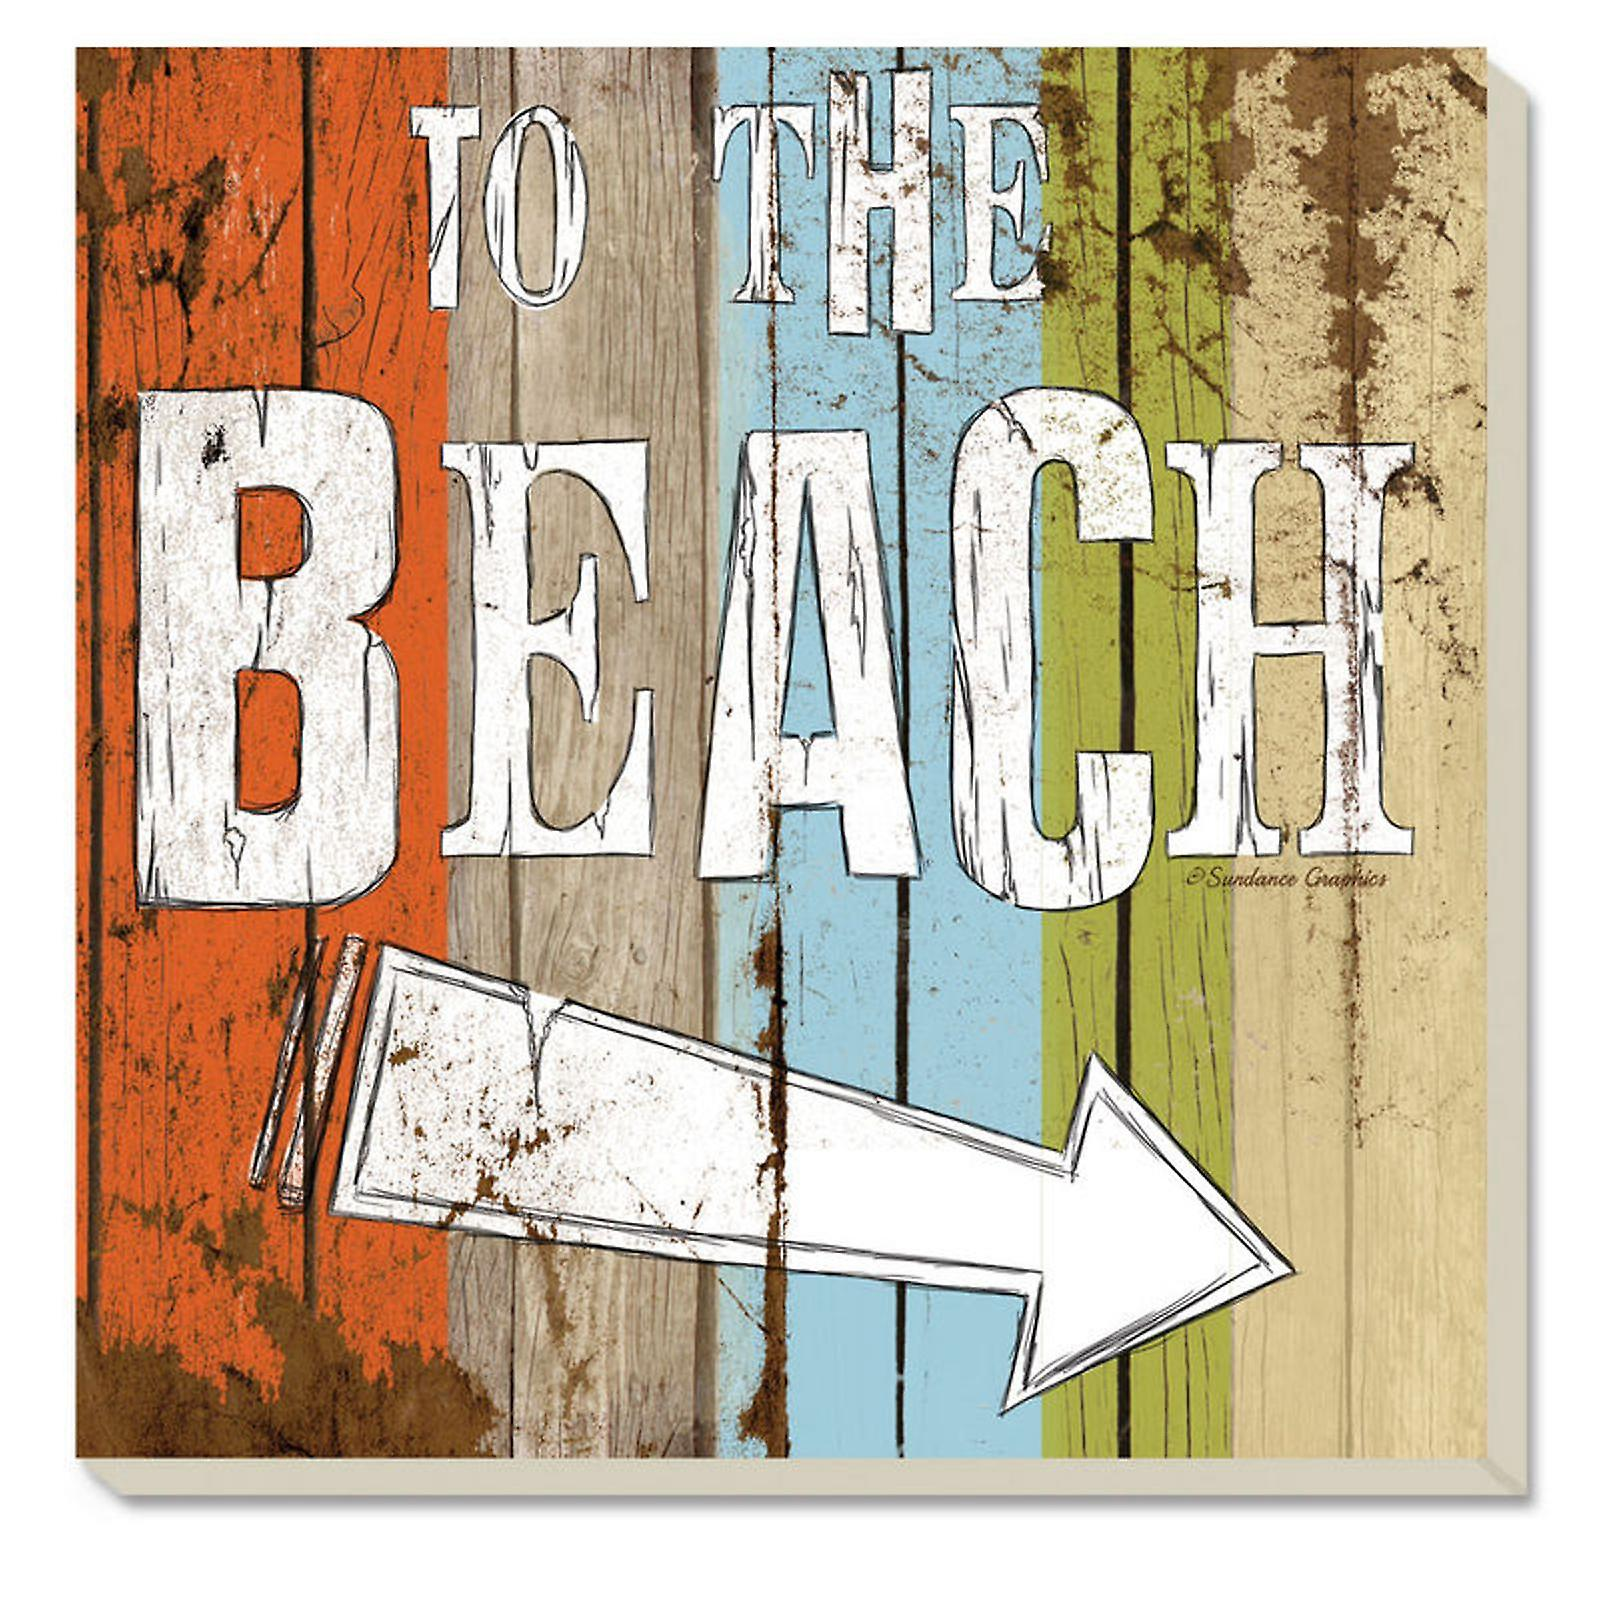 To the Beach Sign 4 Inch Square Absorbent Stone Coasters Set of 4